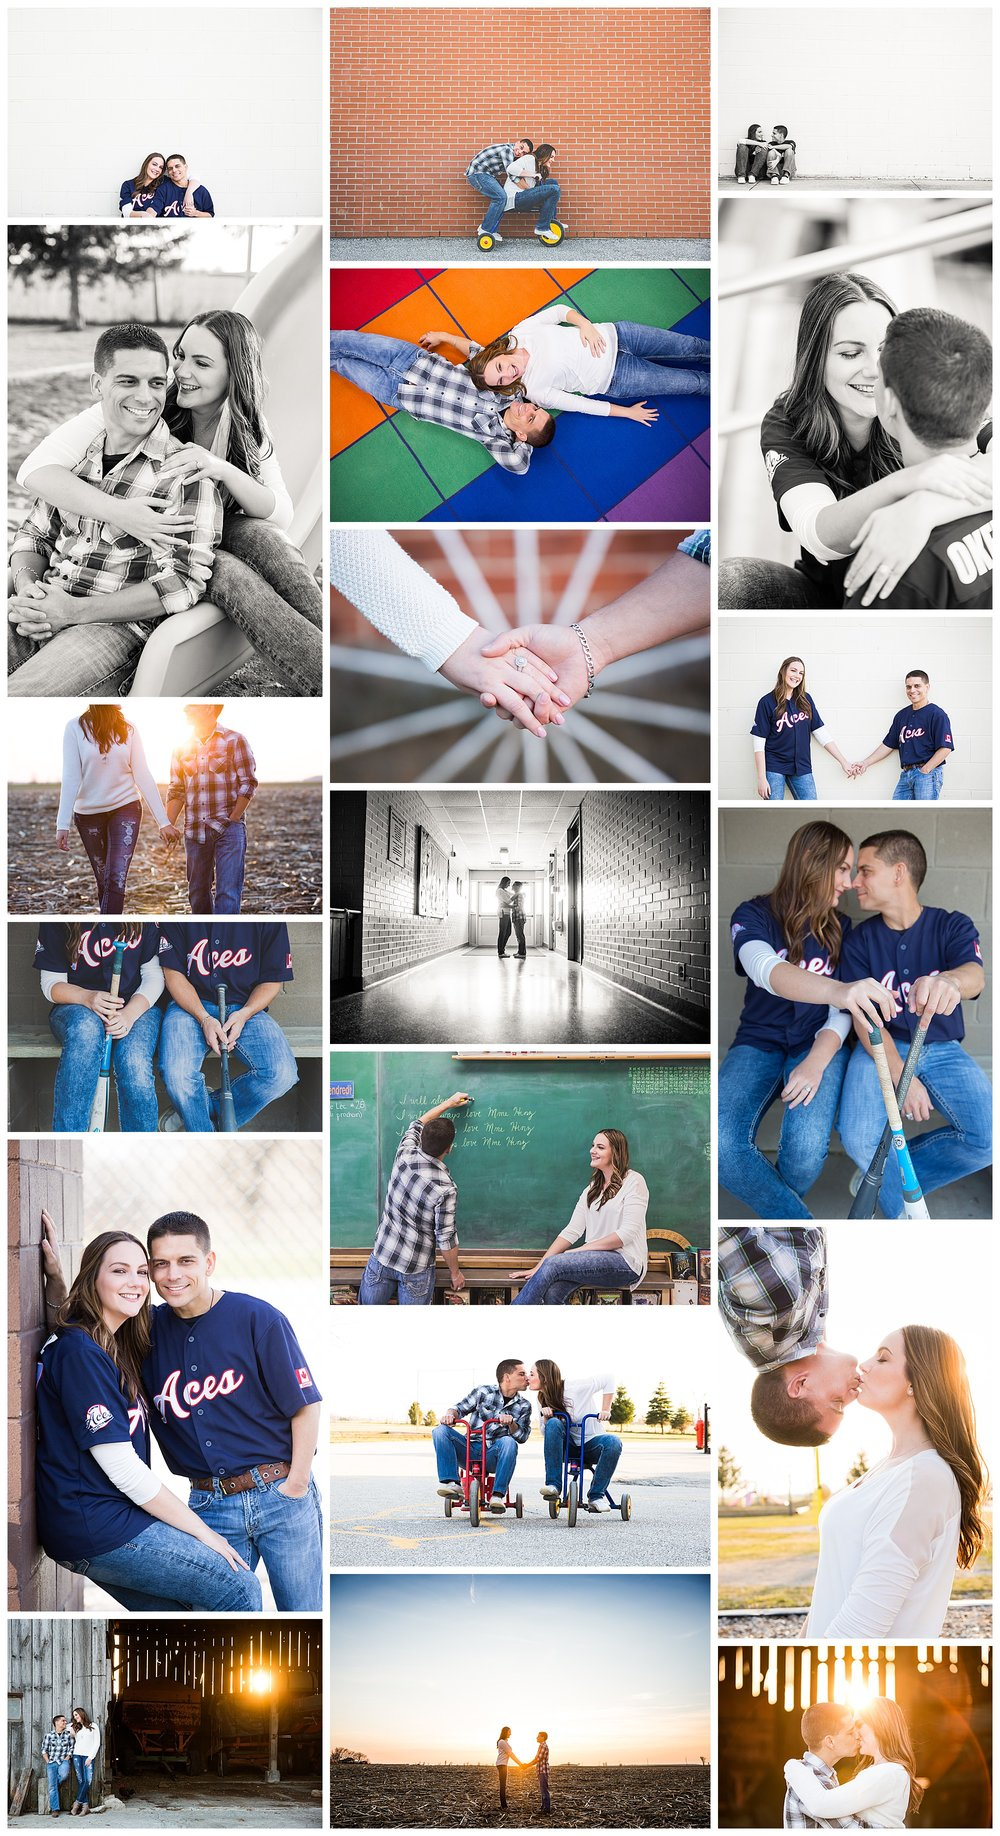 Brookville Ontario Public School engagement photography by VanDaele & Russell